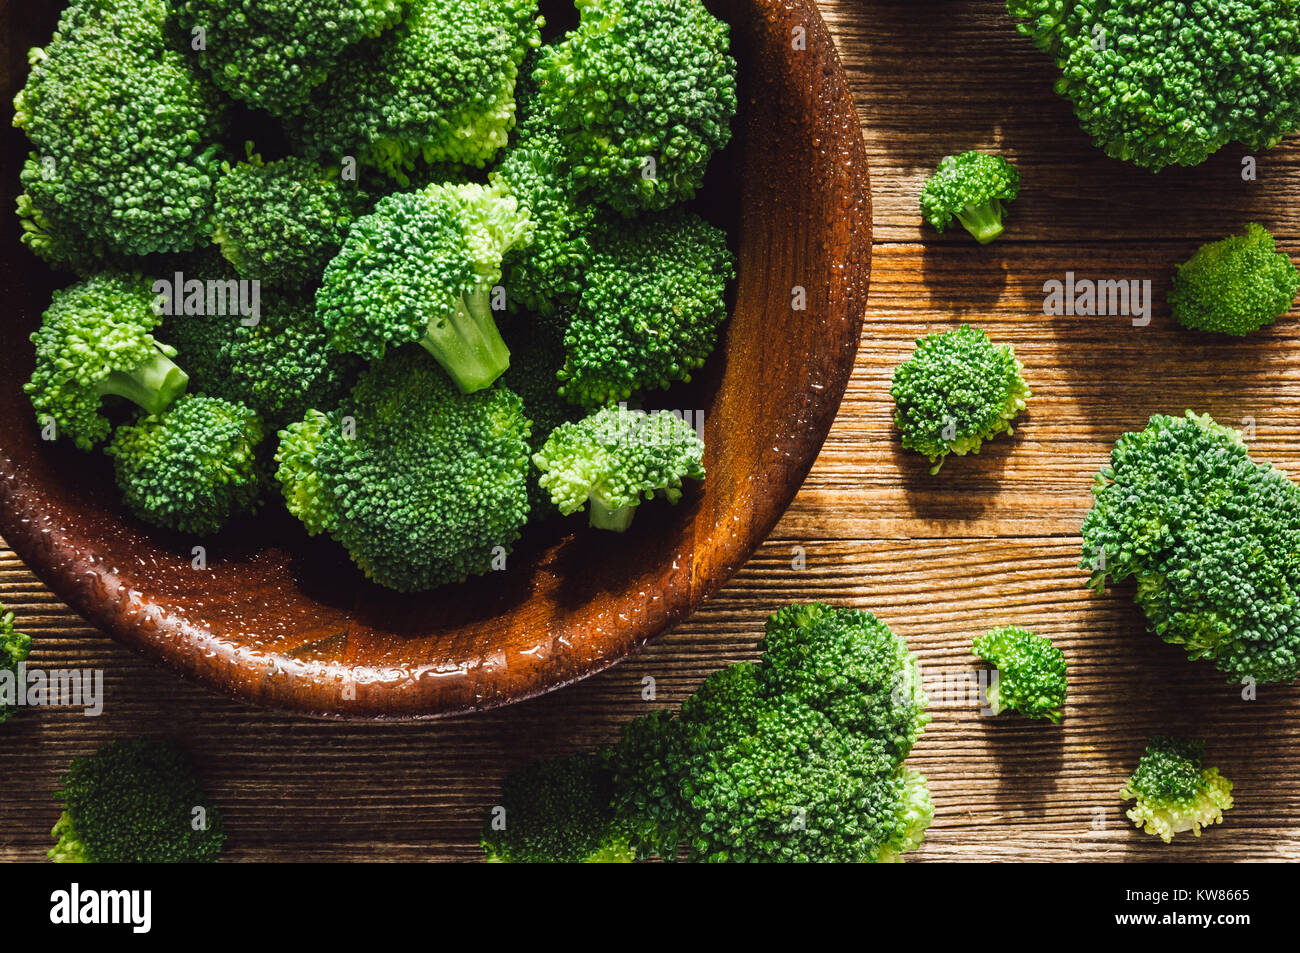 Fresh Washed Broccoli Florets on Cedar Table - Stock Image